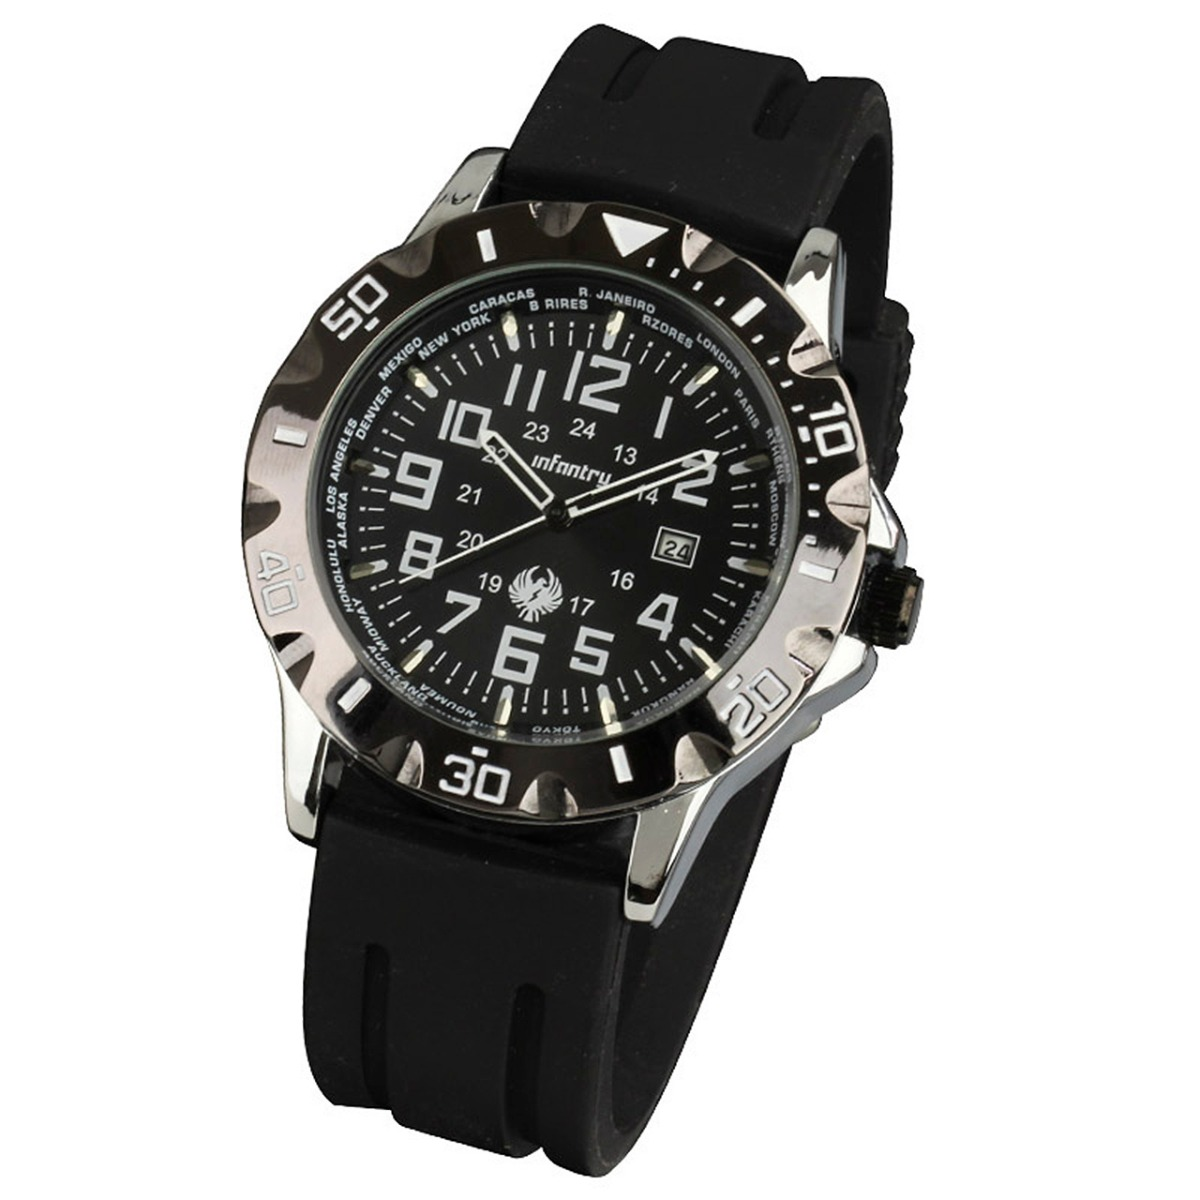 INFANTRY DATE ARMY 19-24CM SILICON RUBBER SPORTS QUARTZ MENS WRIST WATCH BLACK